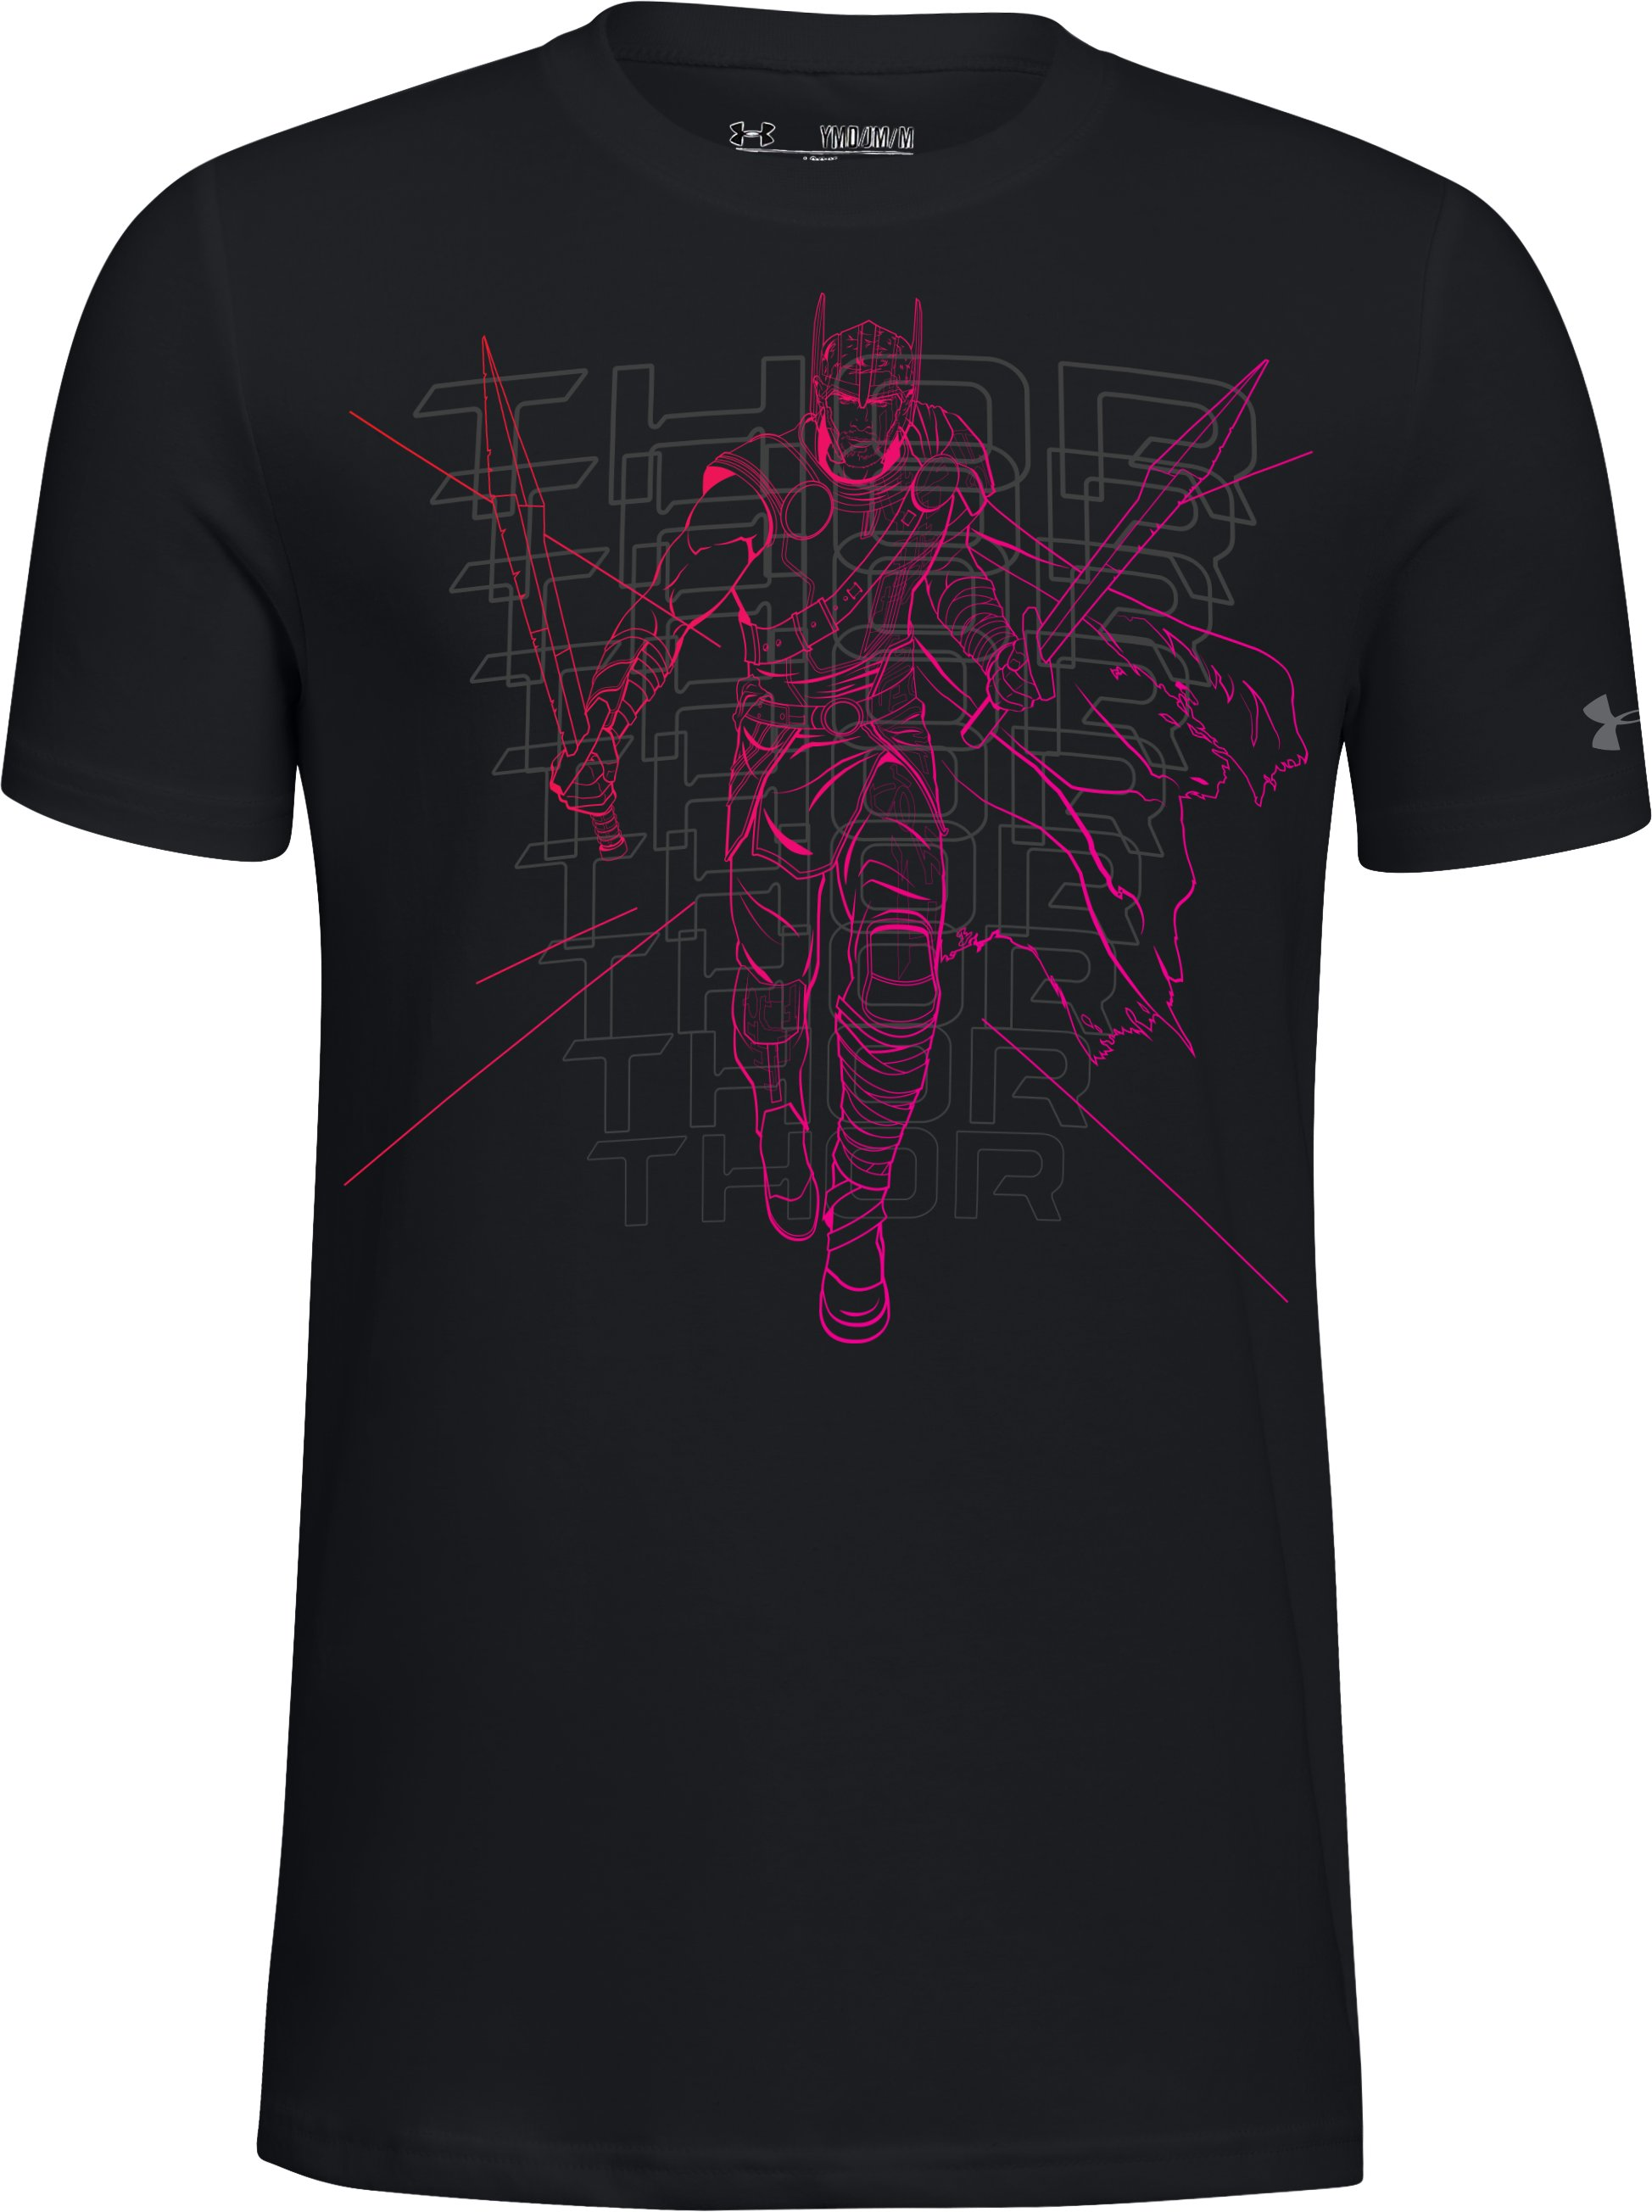 Linear Thor Tee 1 Color $15.00